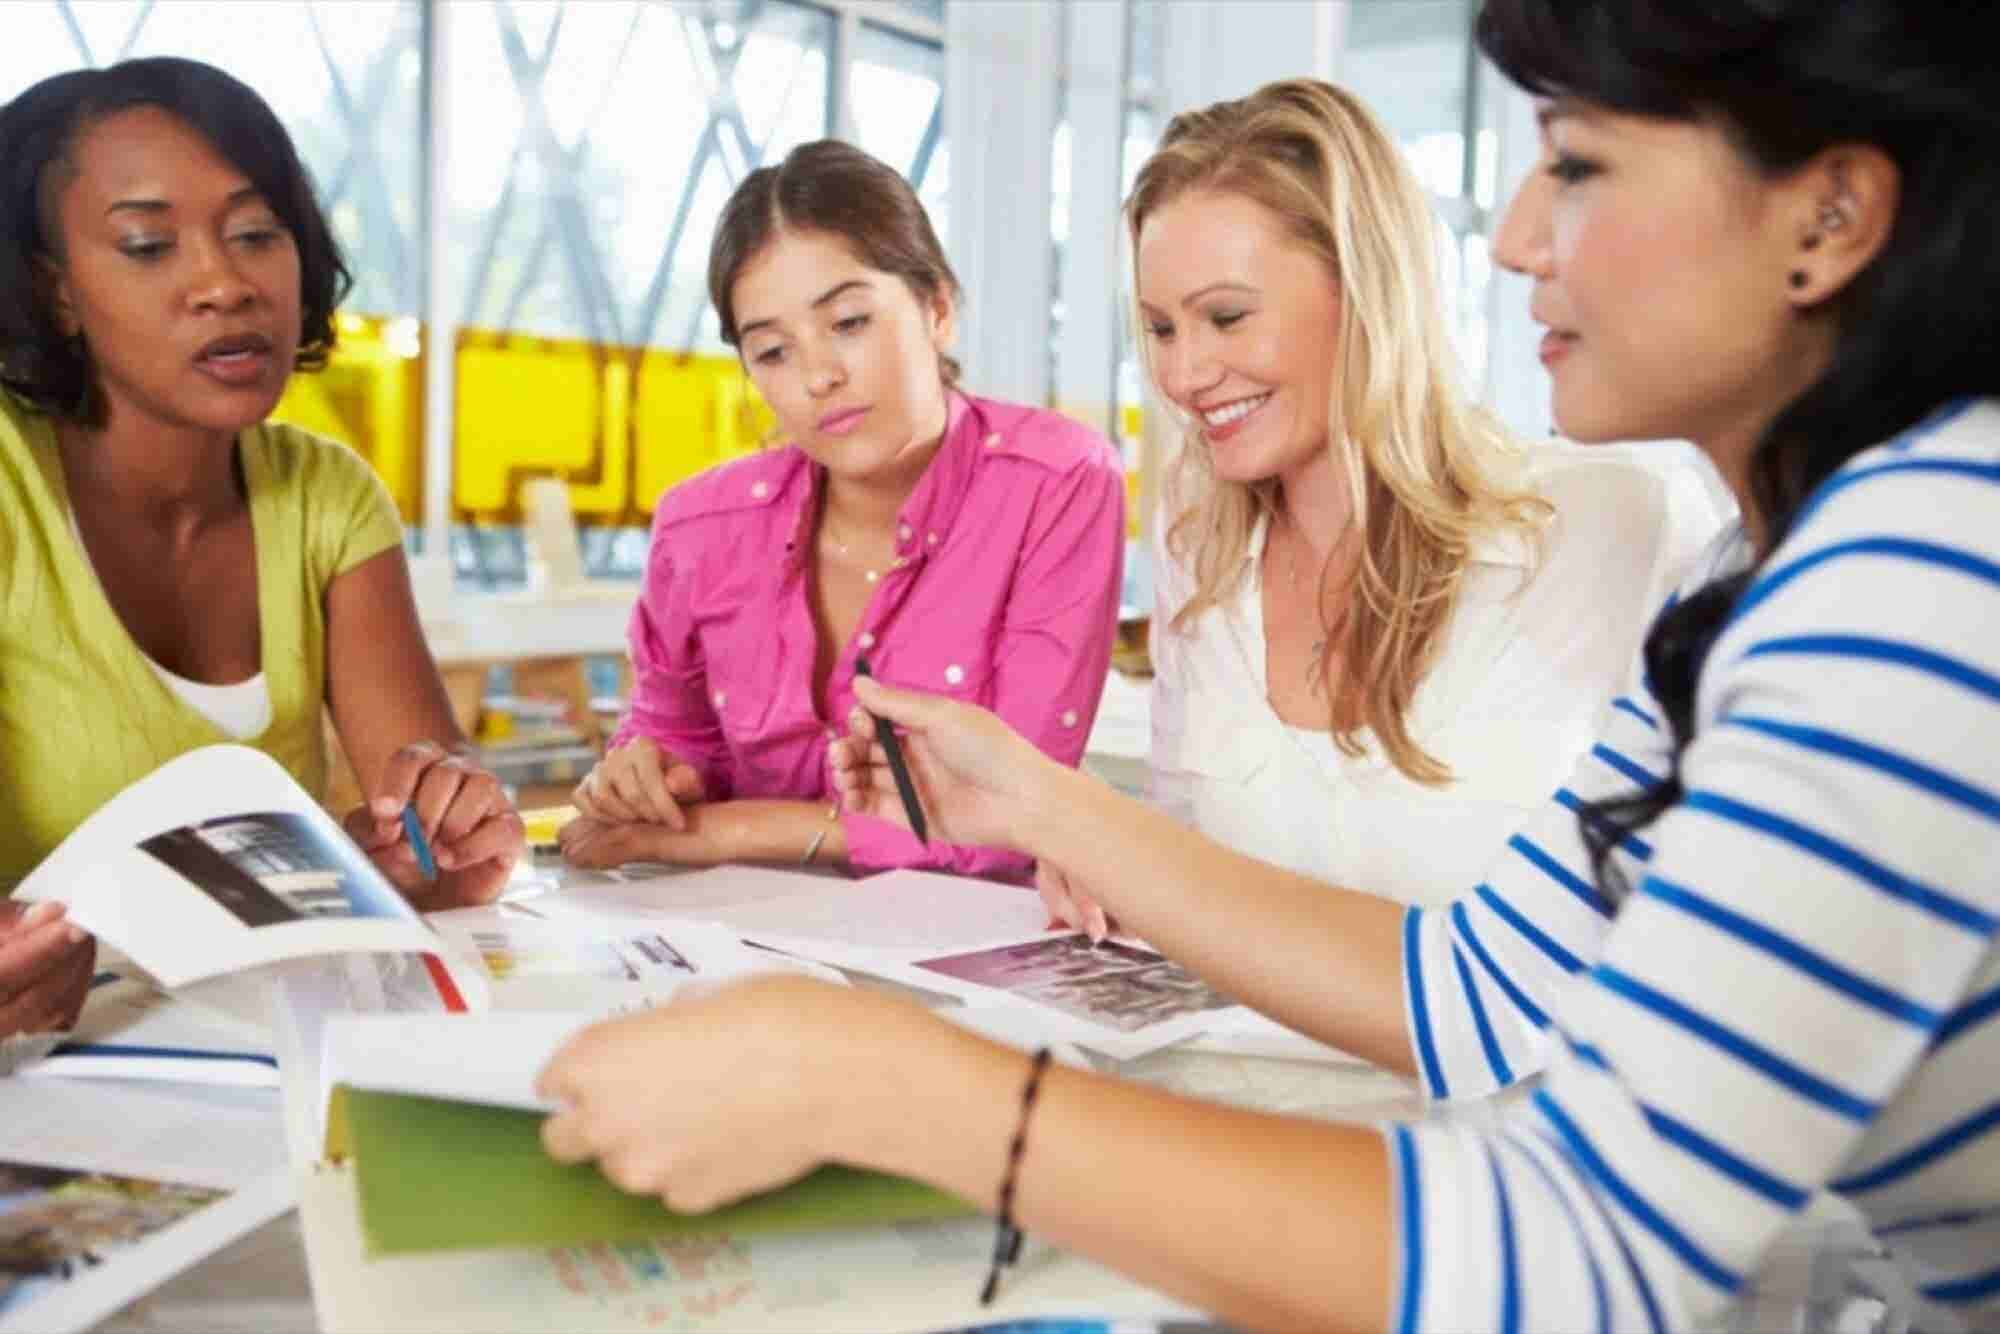 One Thing You Can Do to Be a Great Supporter of Women at Work